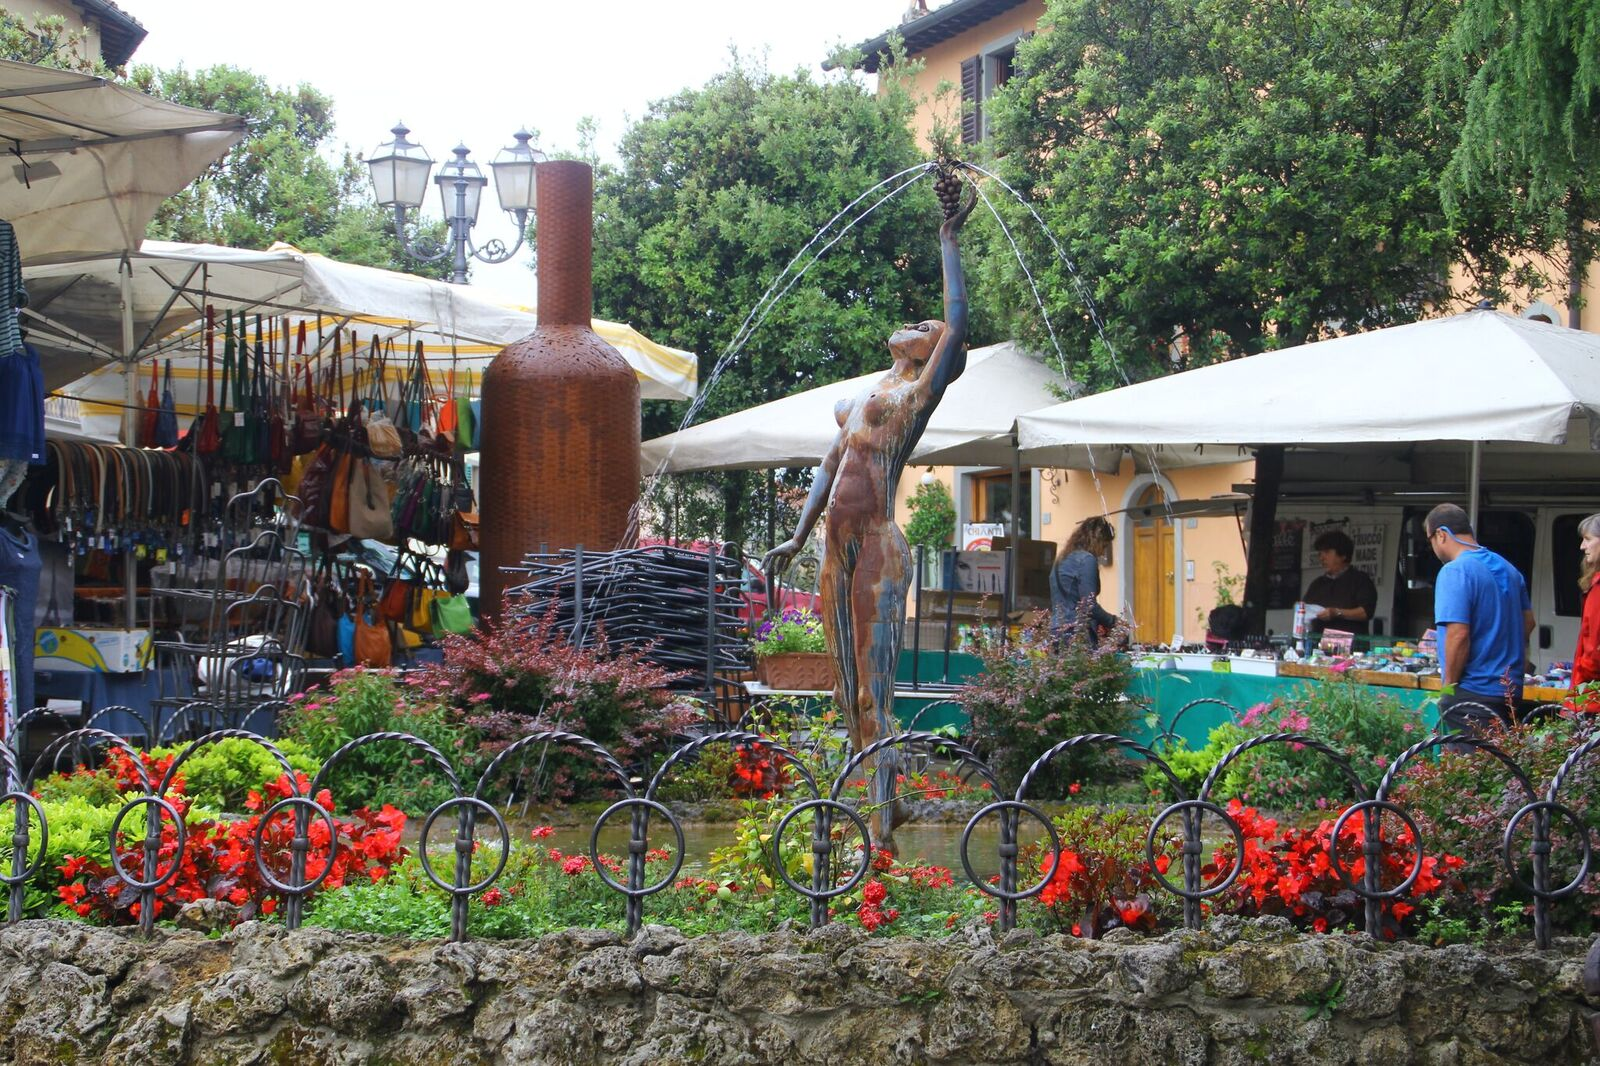 The Best Places to Visit in Chianti